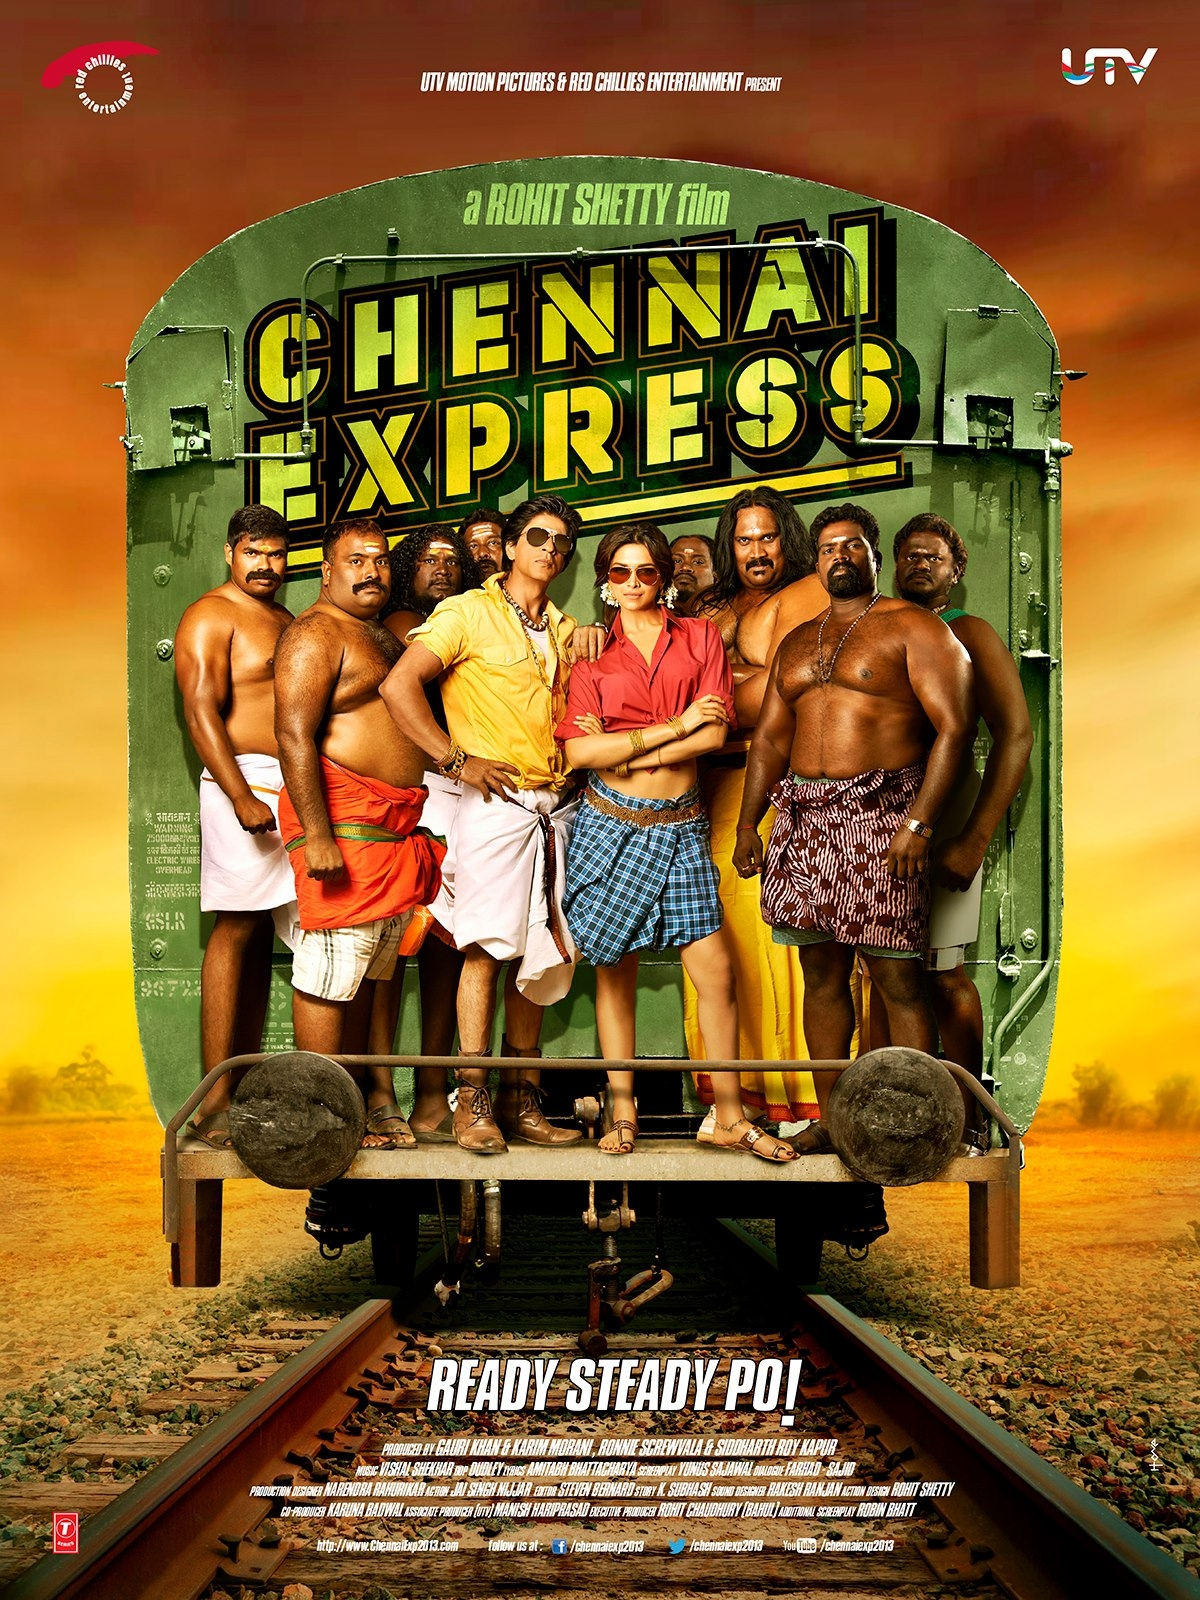 Chennai Express - Movie Poster #5 (Original)